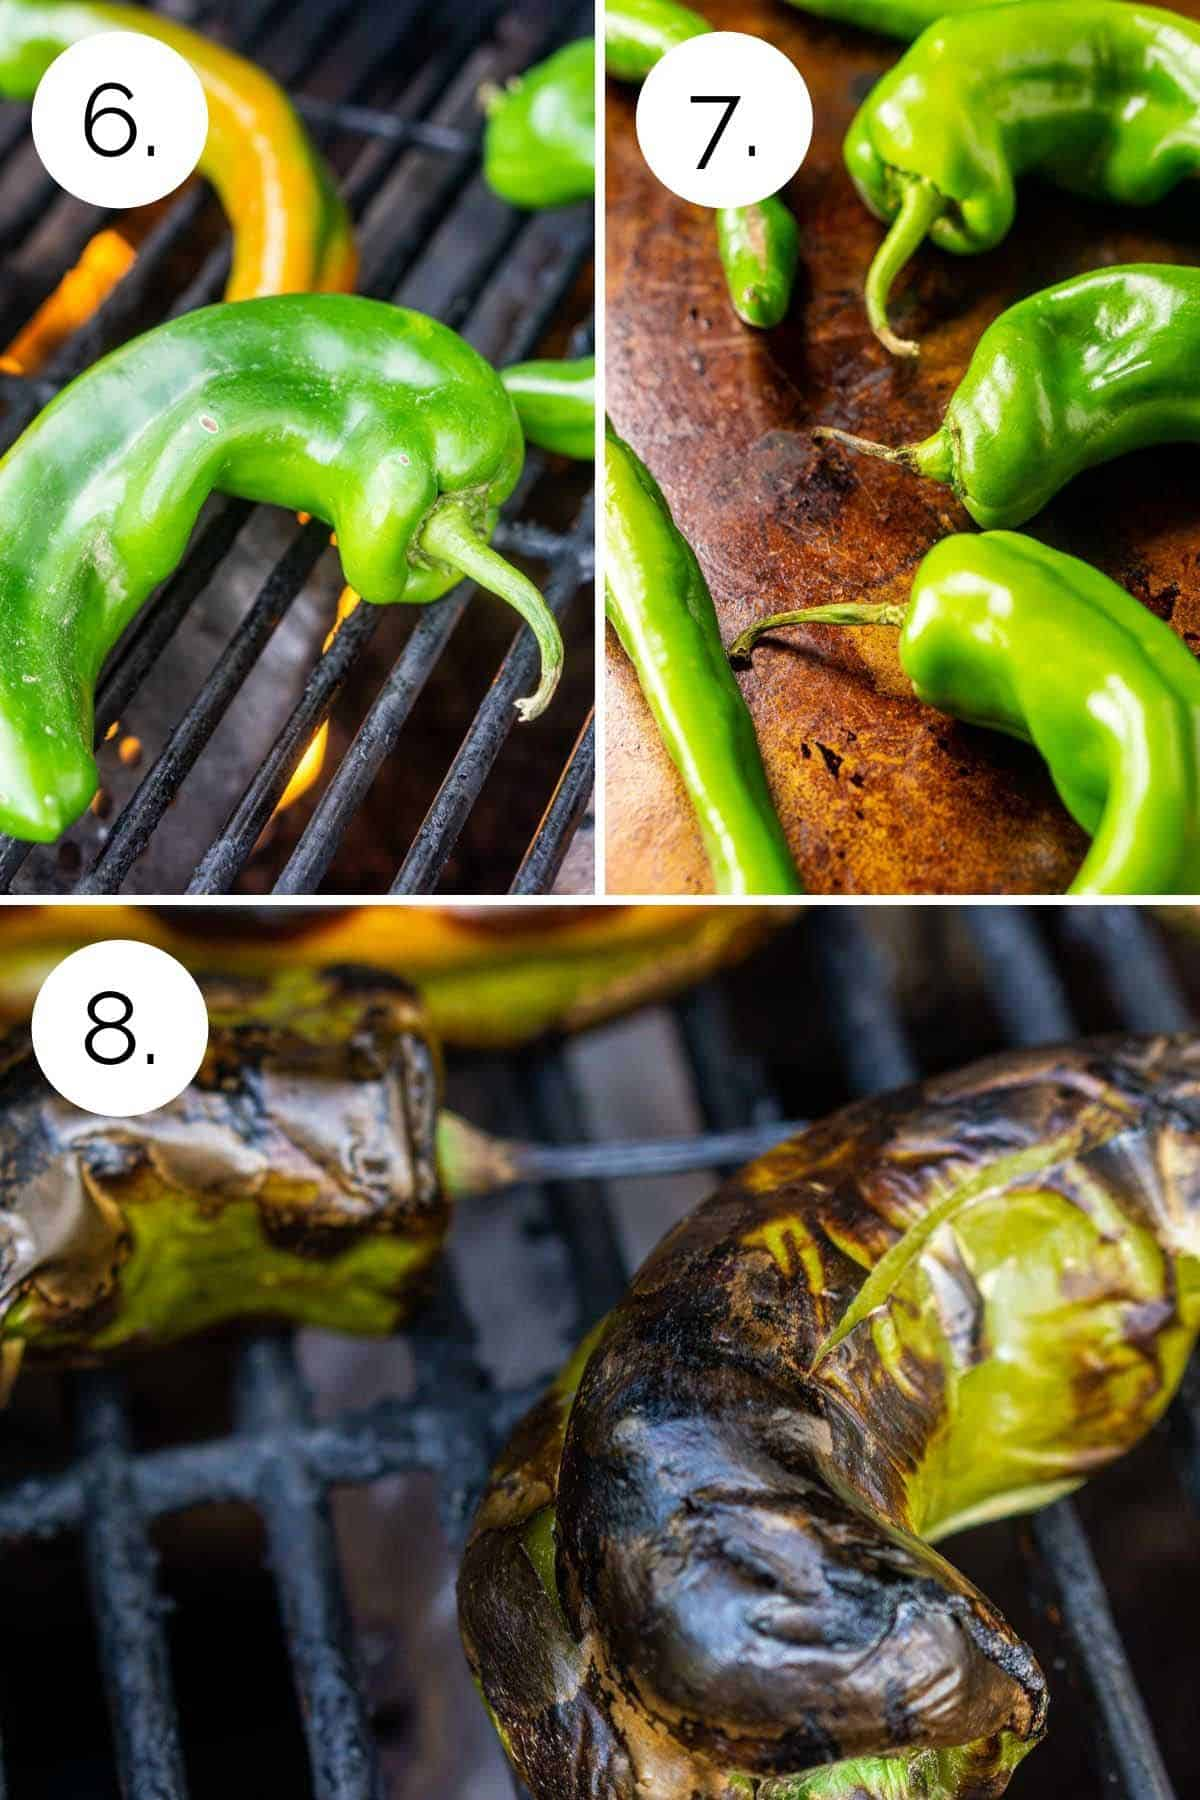 Showing the process of roasting the green chiles.